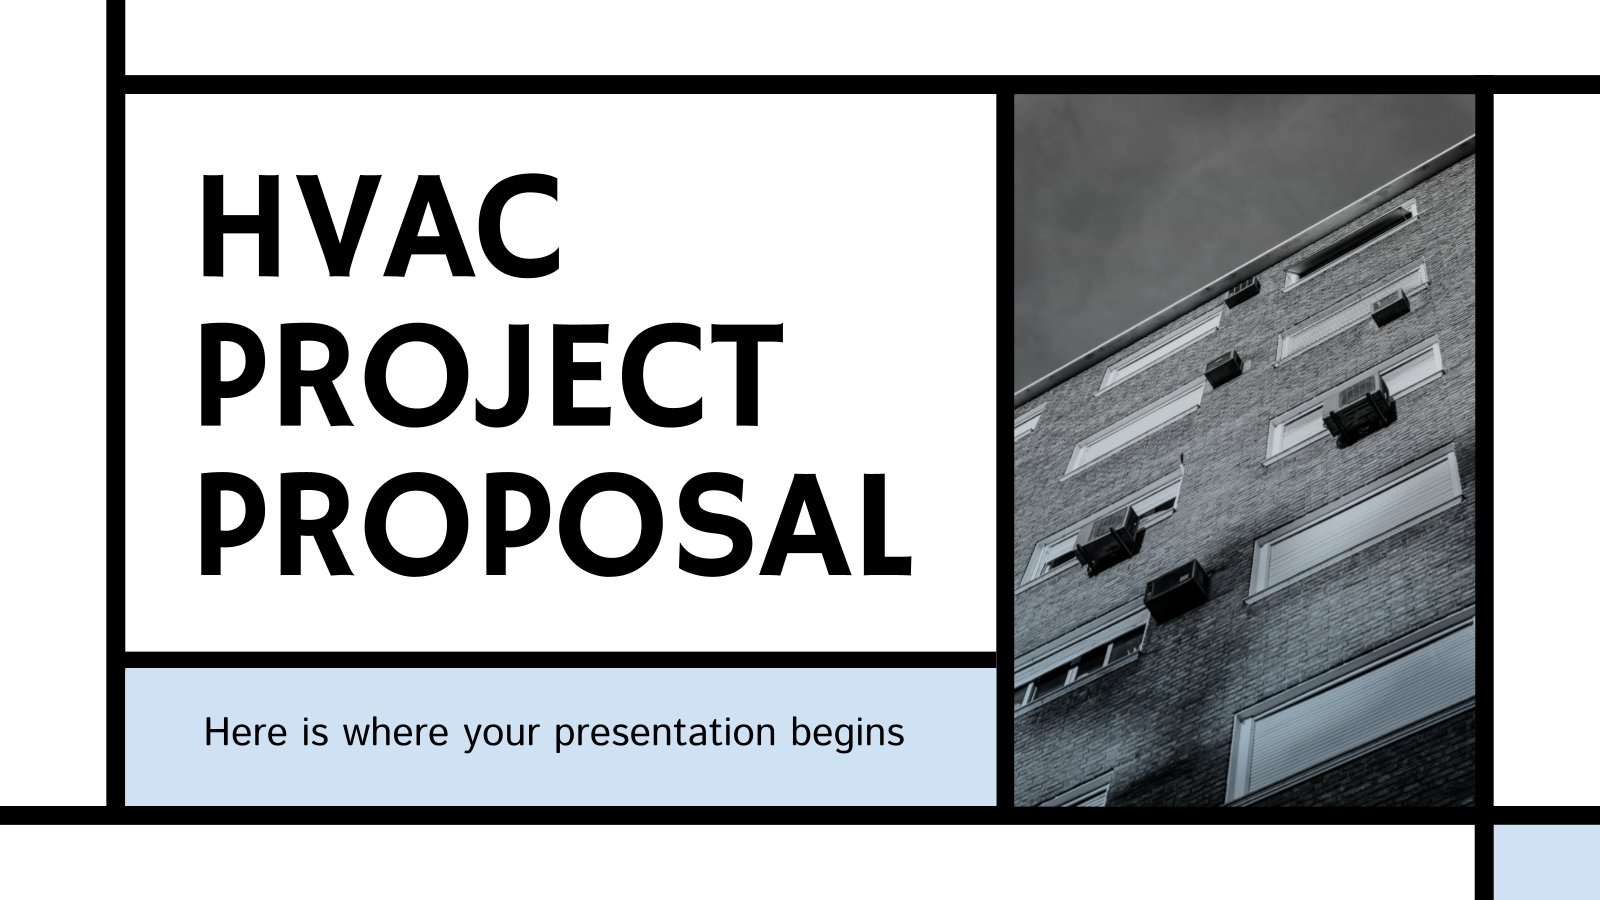 HVAC Project Proposal presentation template